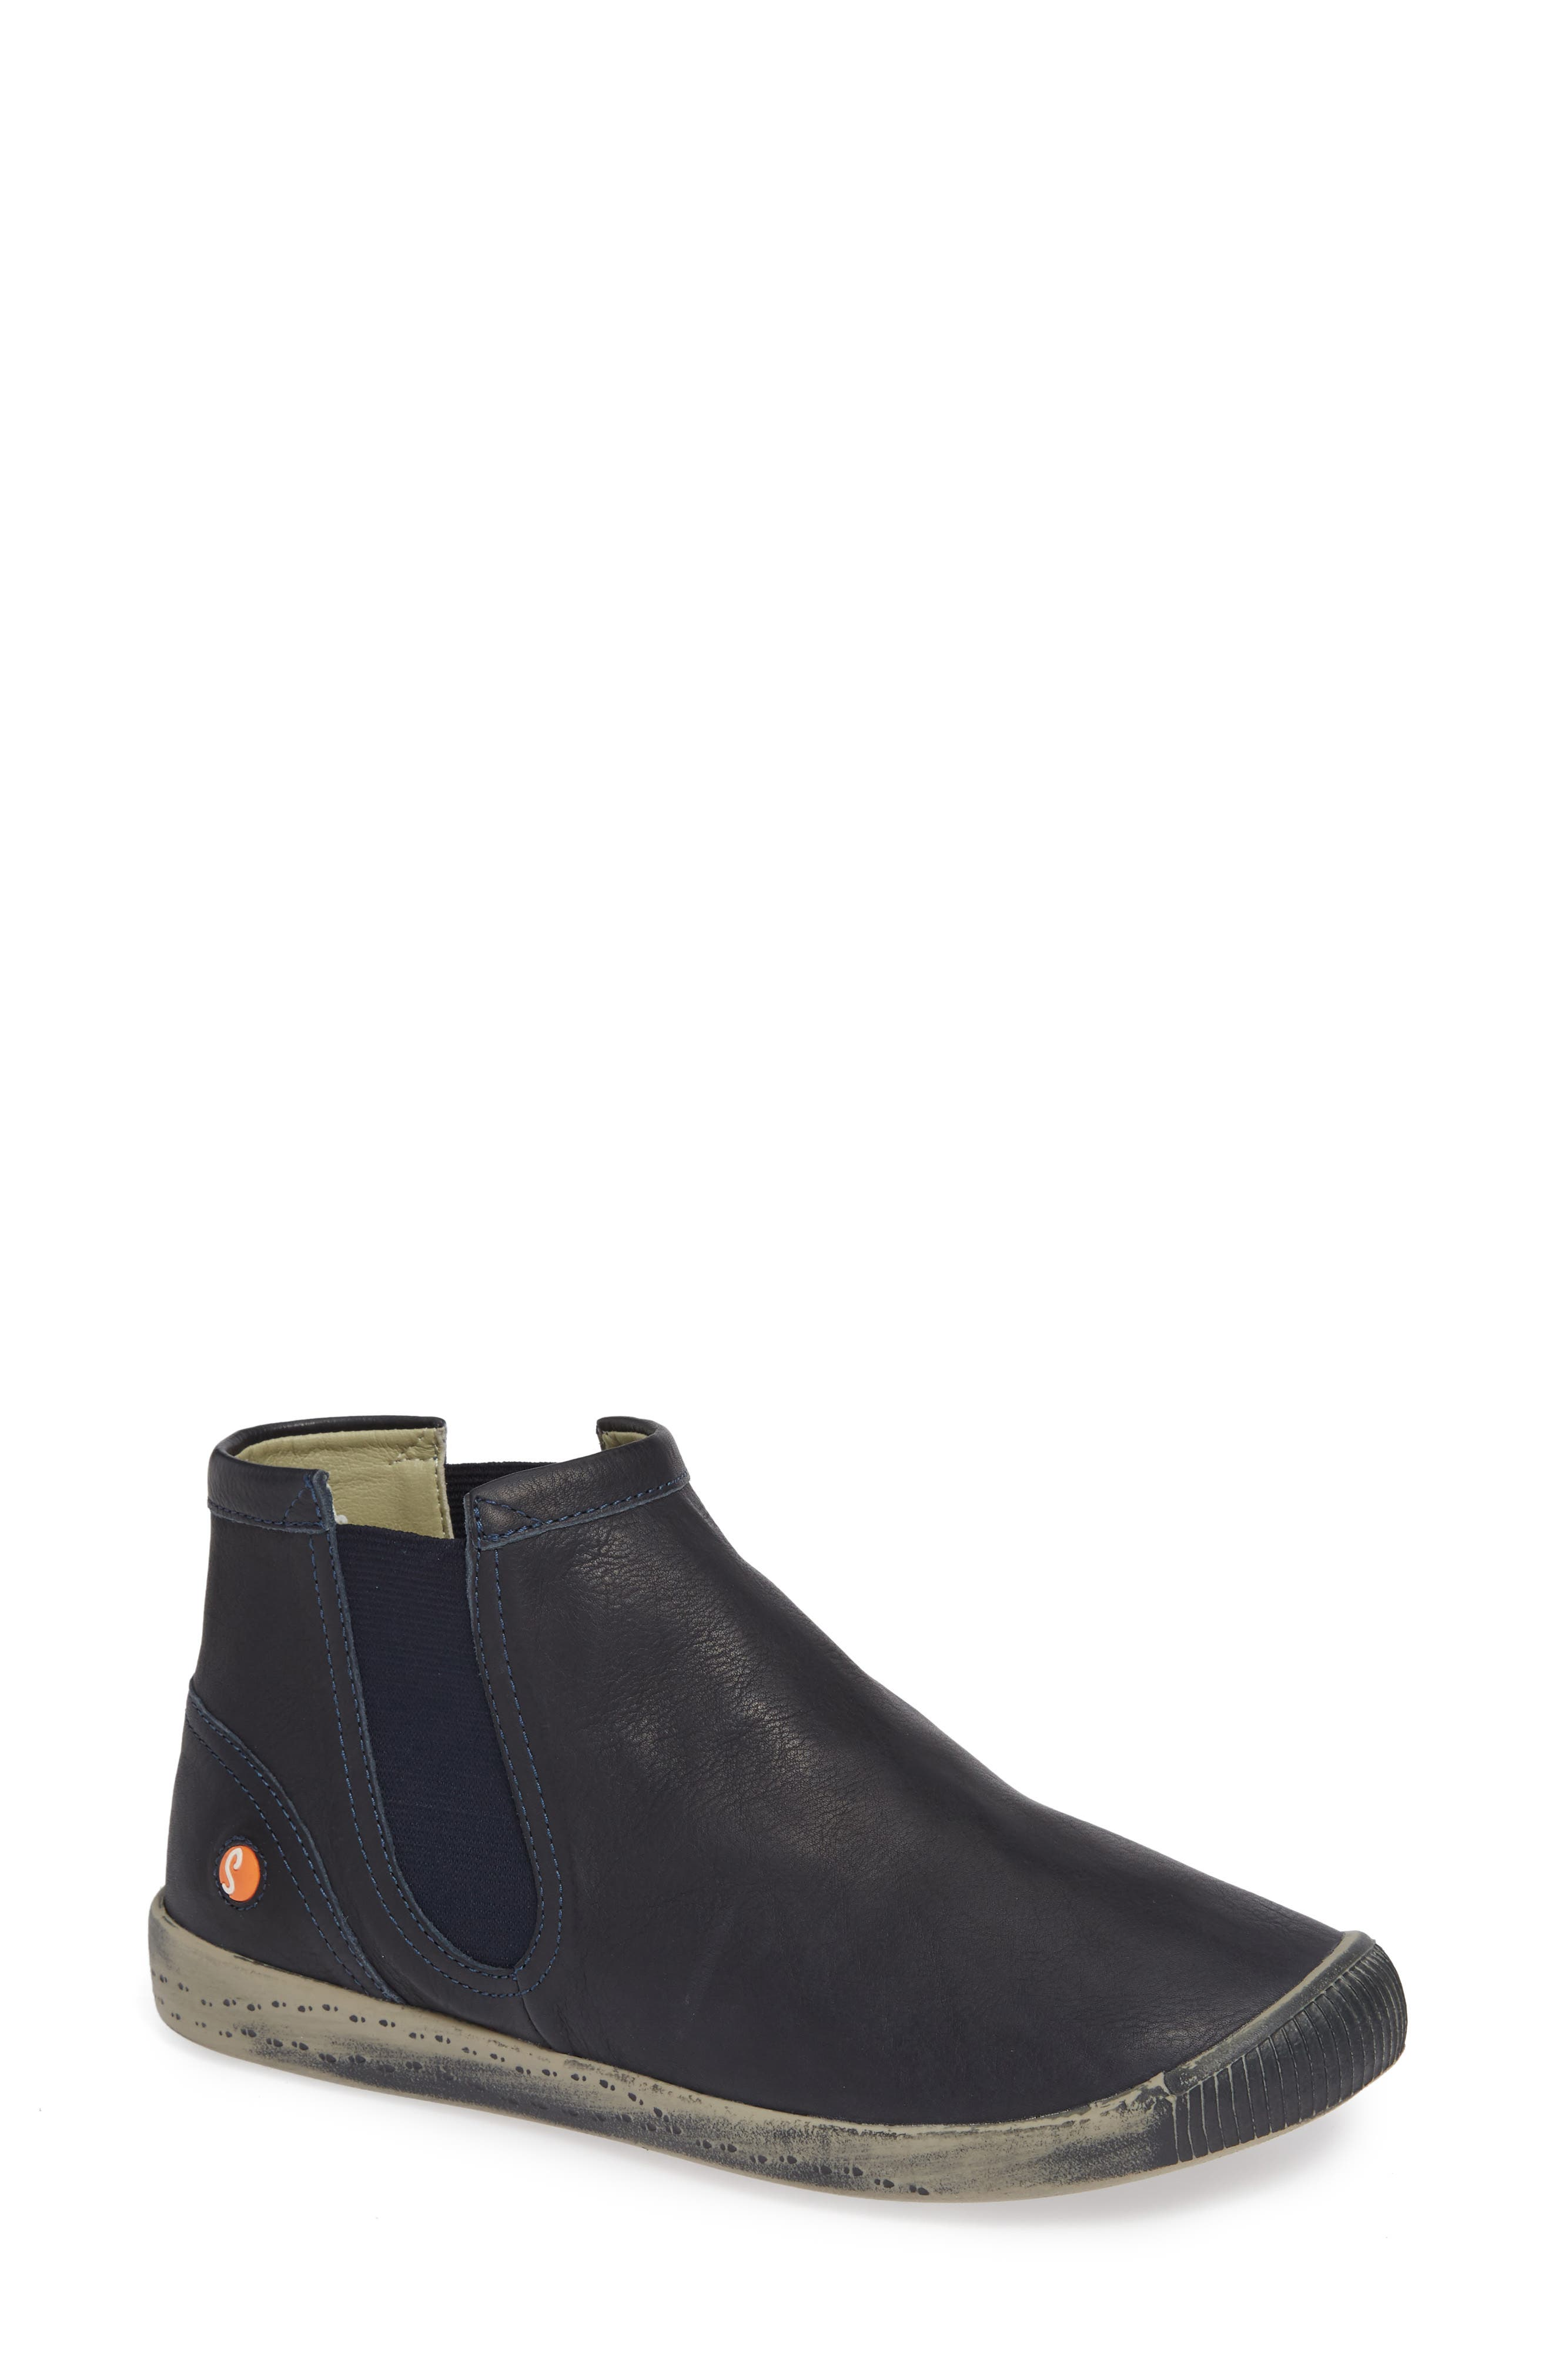 SOFTINOS BY FLY LONDON Ici Sneaker, Main, color, NAVY SMOOTH LEATHER